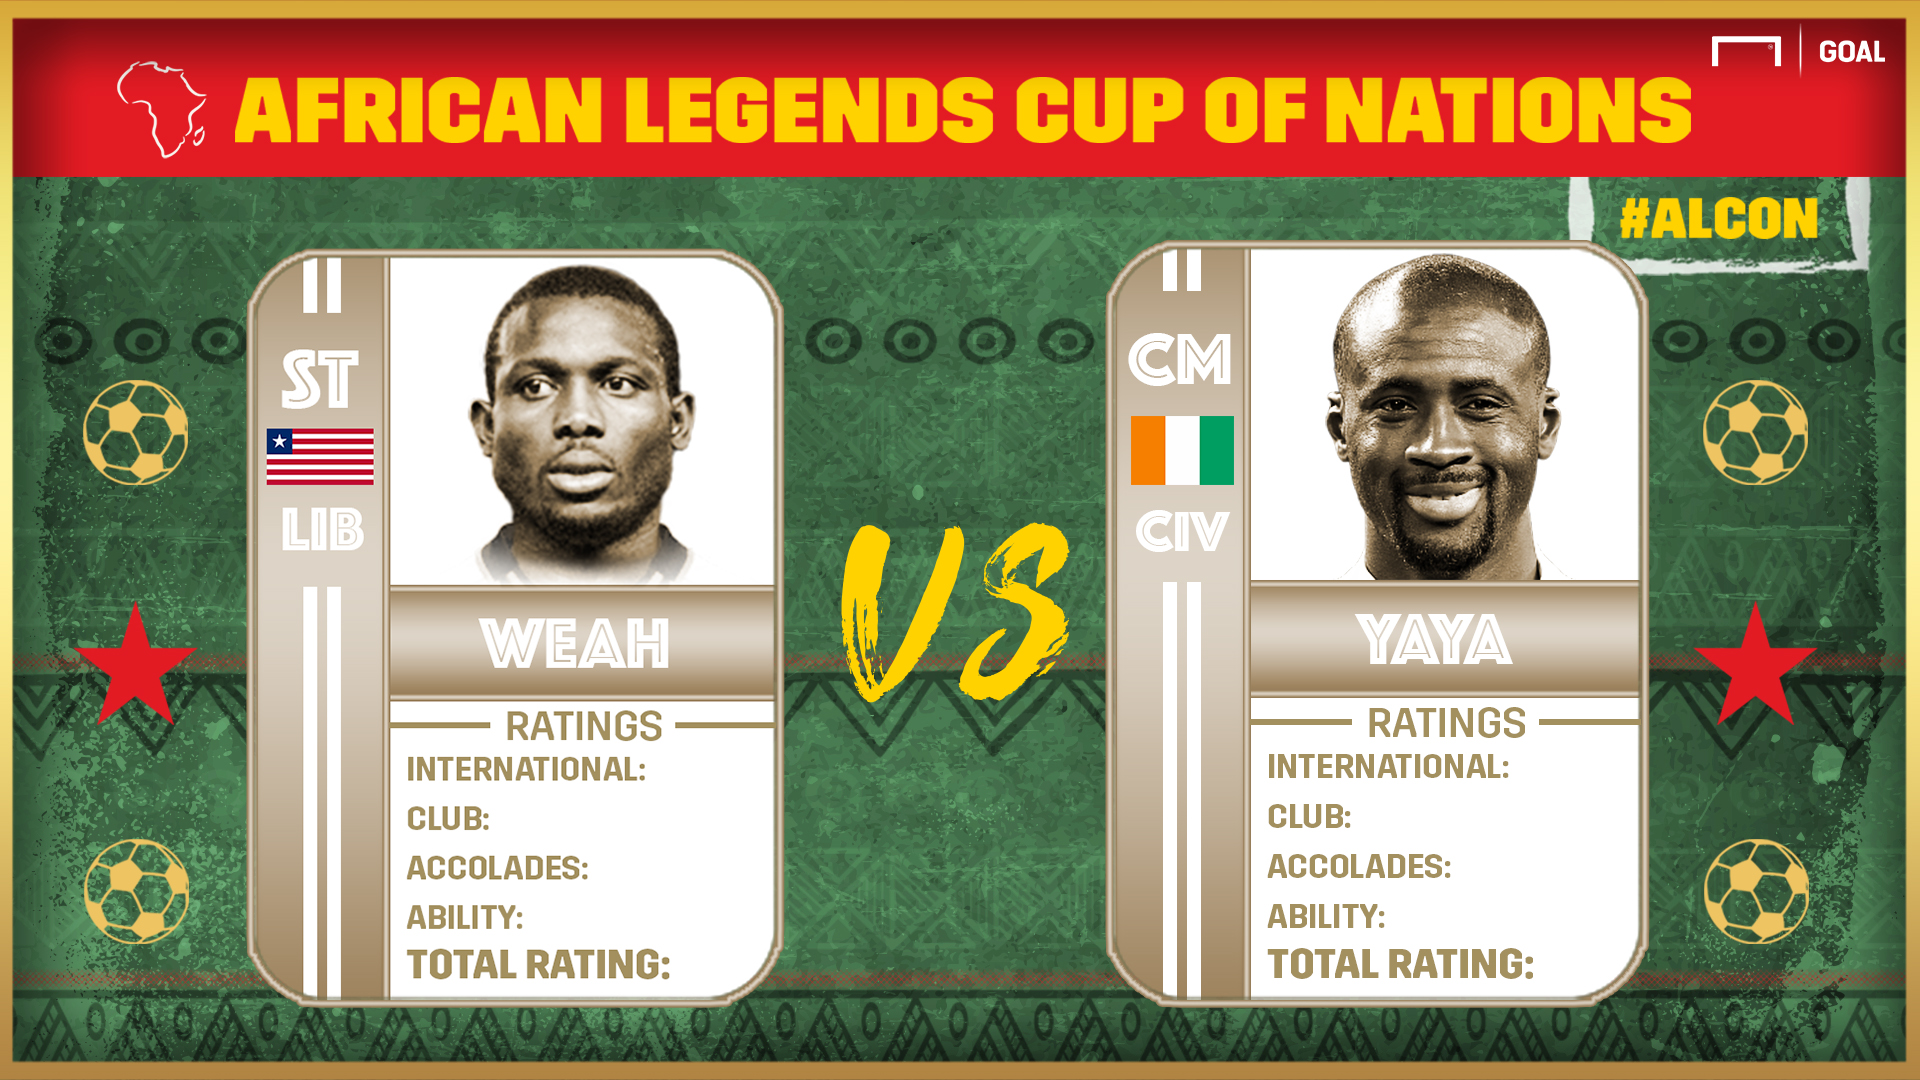 African Legends Cup of Nations: Yaya to meet Eto'o in the final